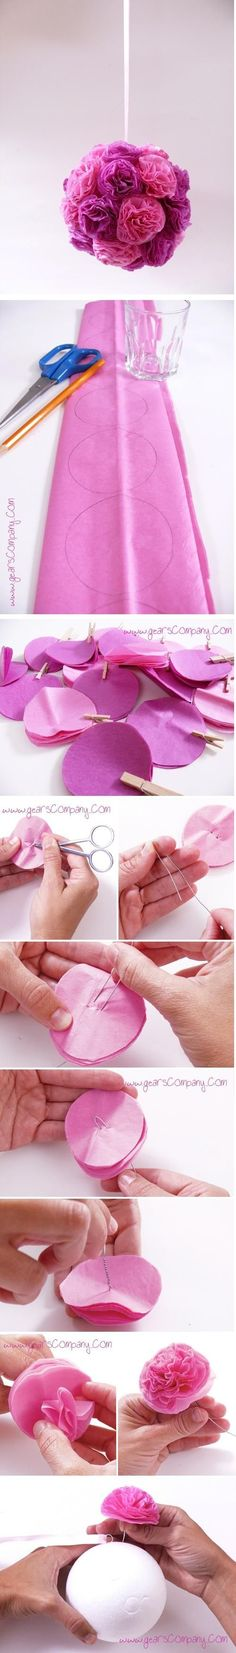 These tissue paper flower balls would be a cheap way to decorate for a wedding.